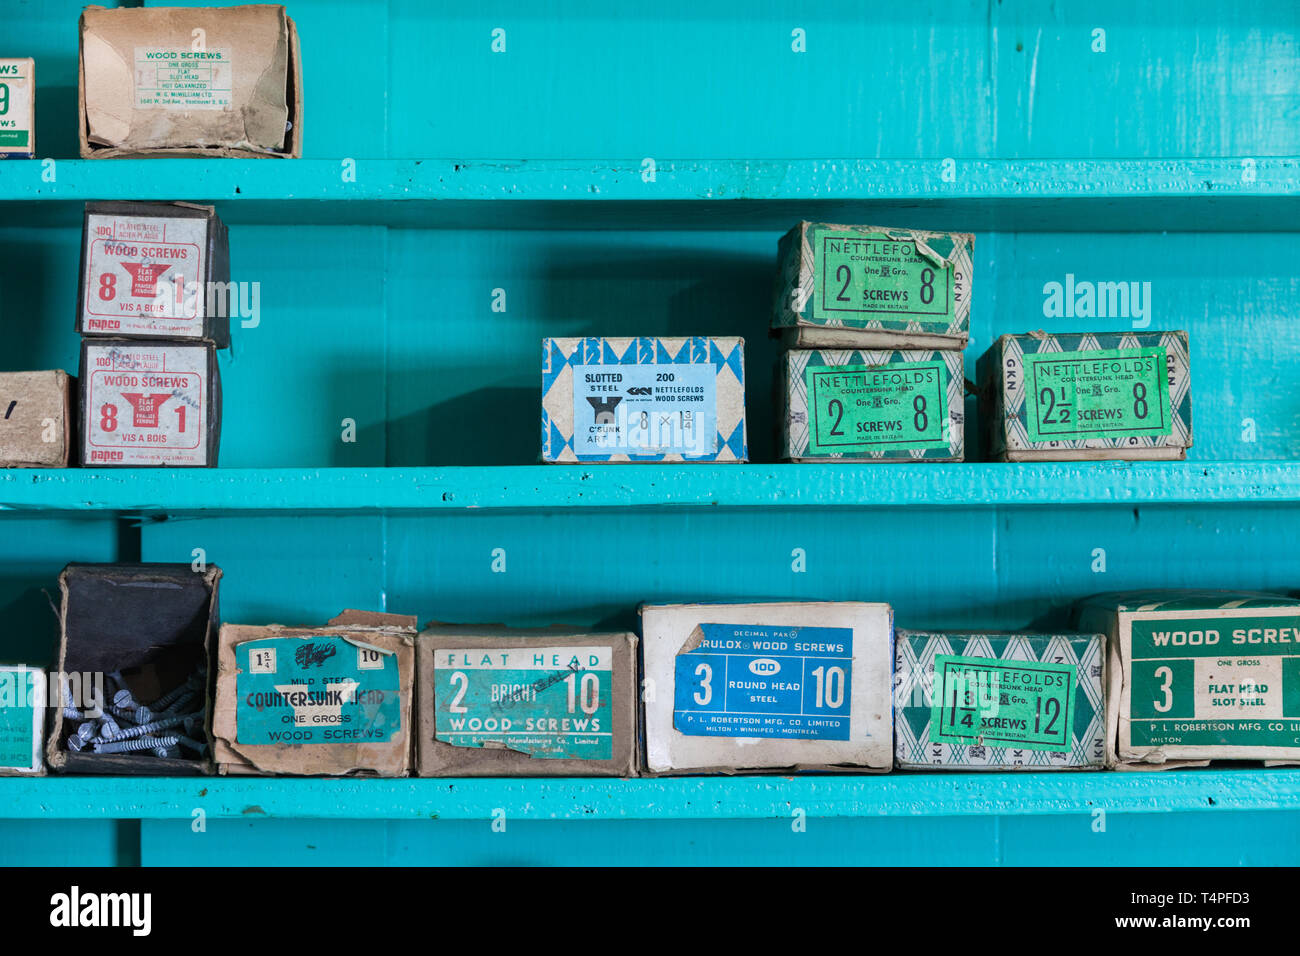 Woodscrews in boxes on a shelf - Stock Image